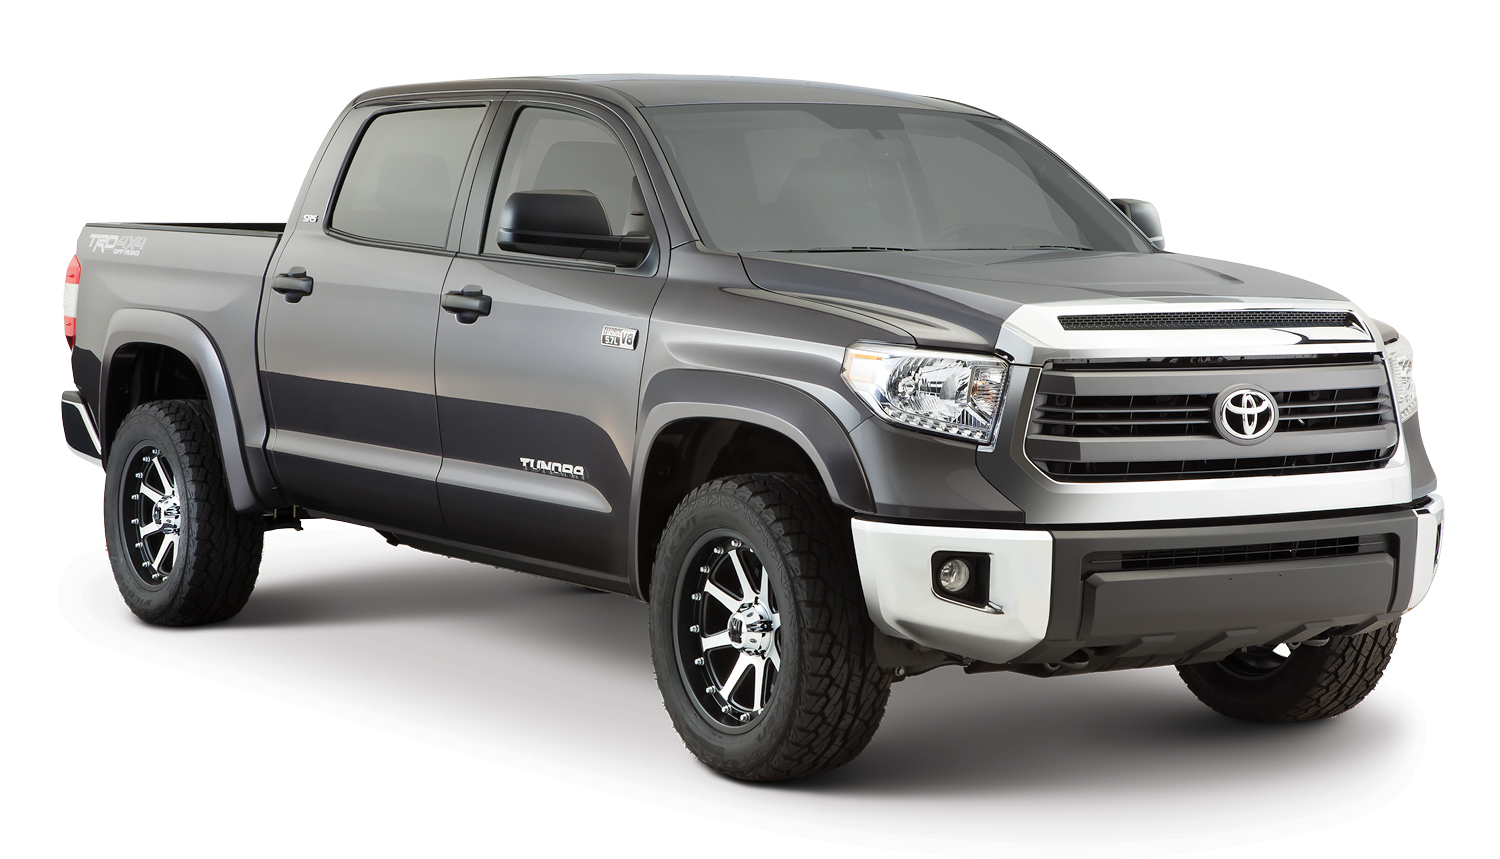 hight resolution of bushwacker toyota tundra extend a fender flares set 2014 2018 30919 02